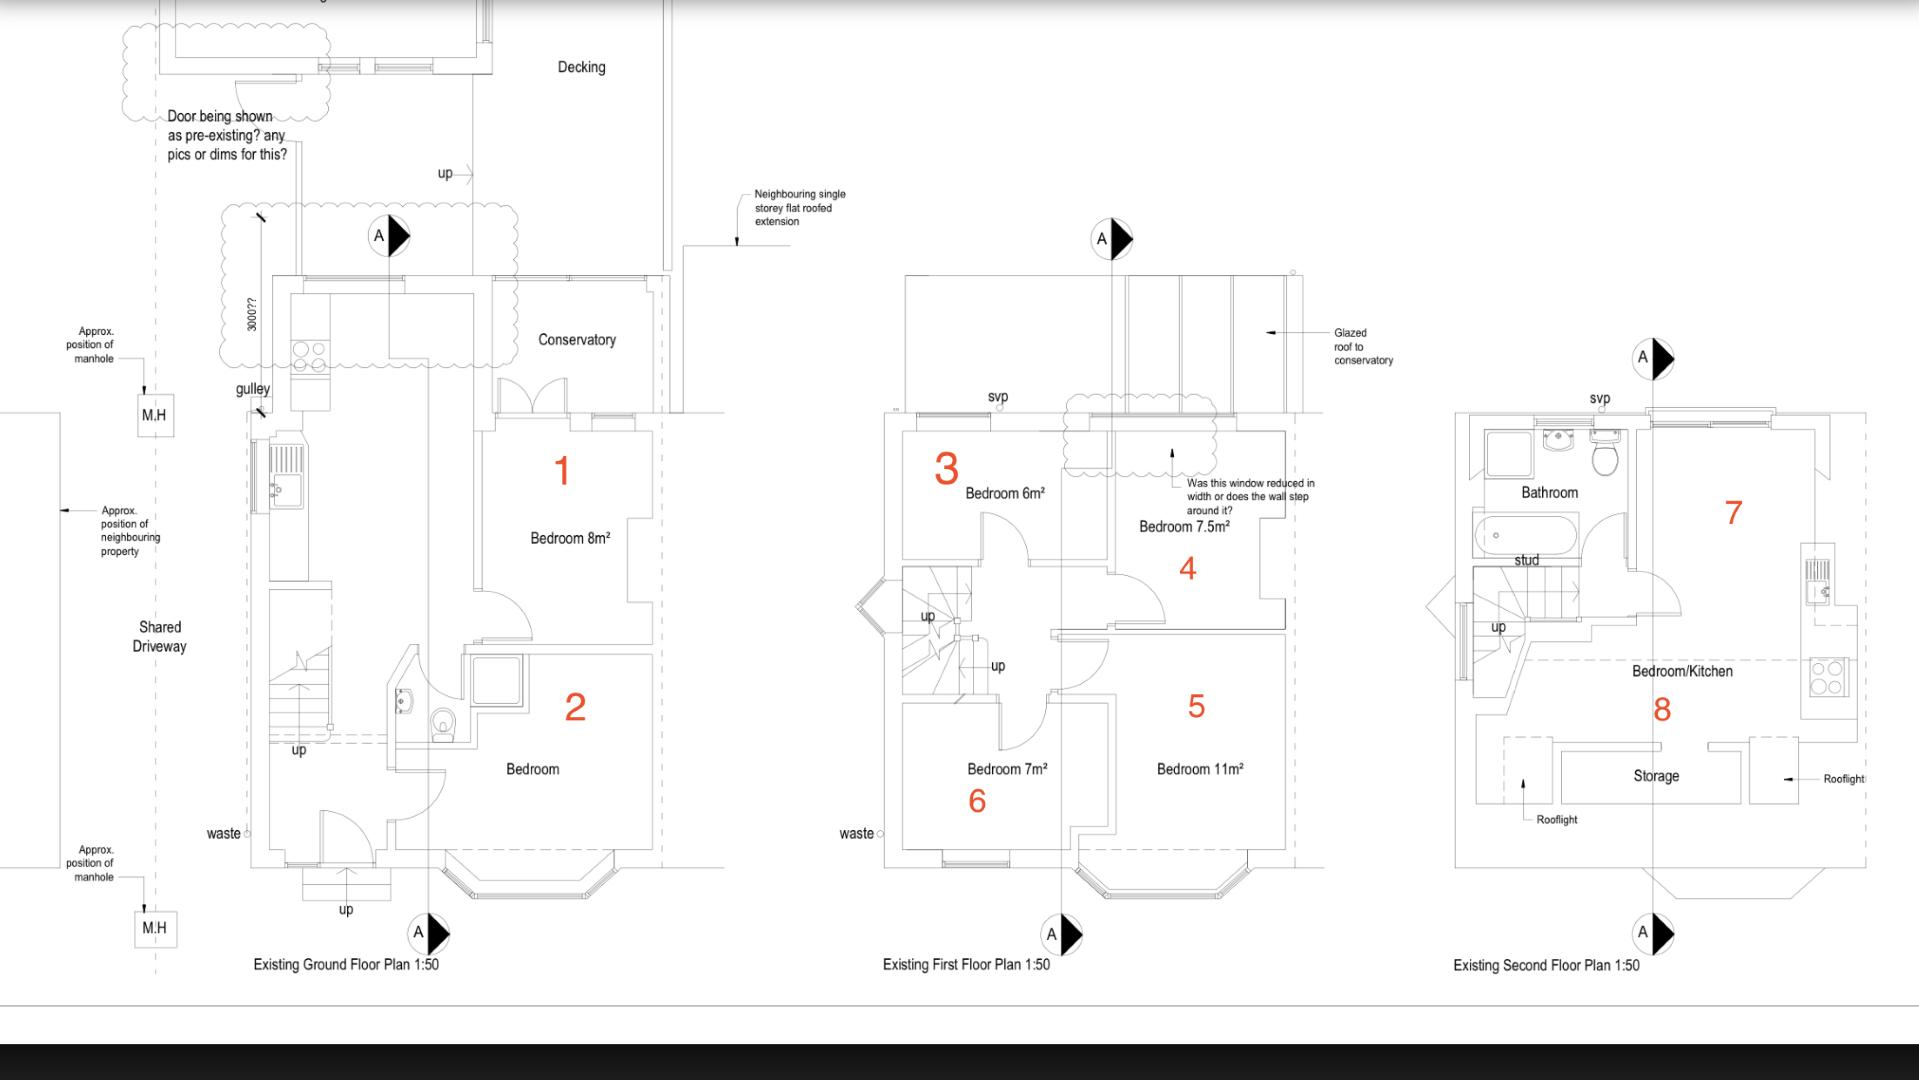 Floor plans for Upper Bevendean Avenue, Brighton property for sale in Bevendean, Brighton by Coapt